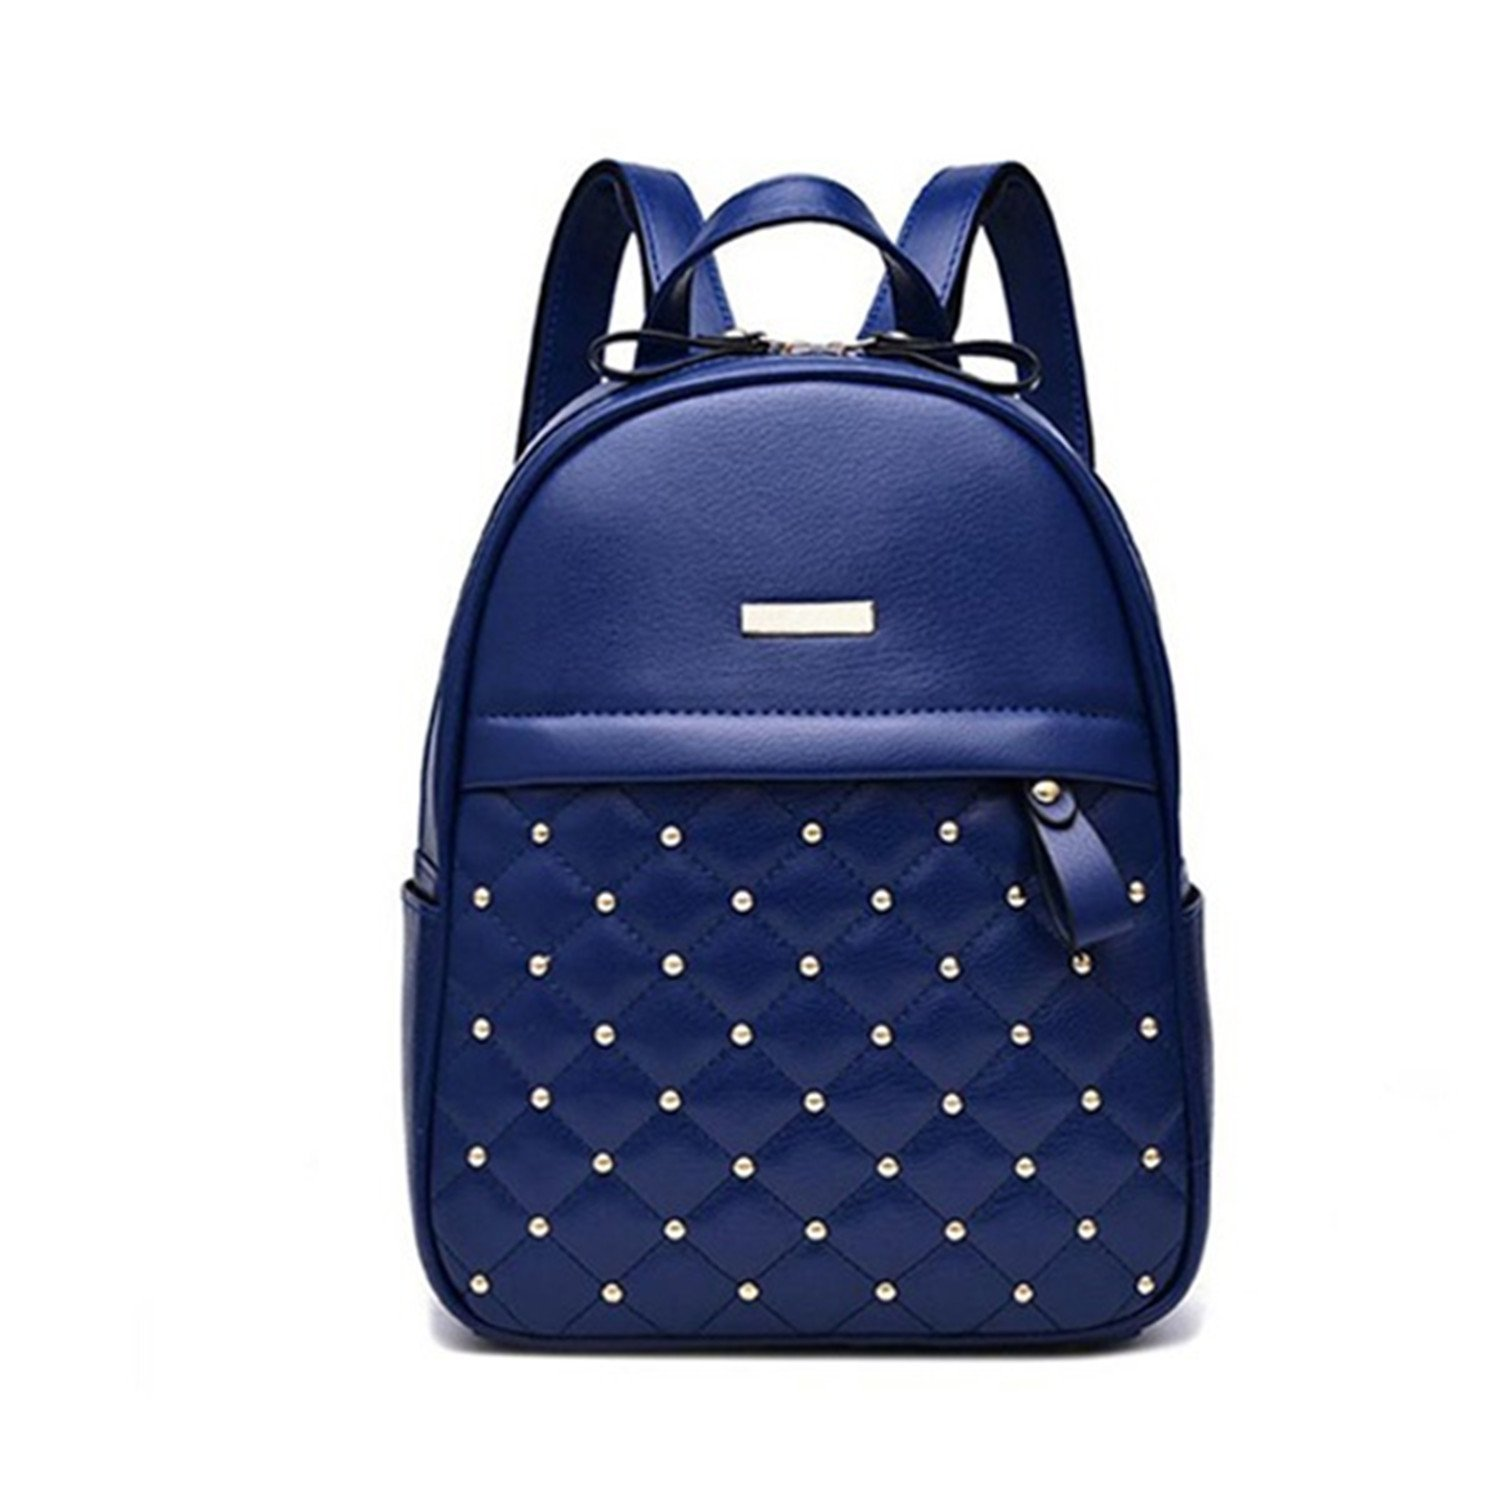 9798f1633b1 Cheap Nice Backpacks, find Nice Backpacks deals on line at Alibaba.com